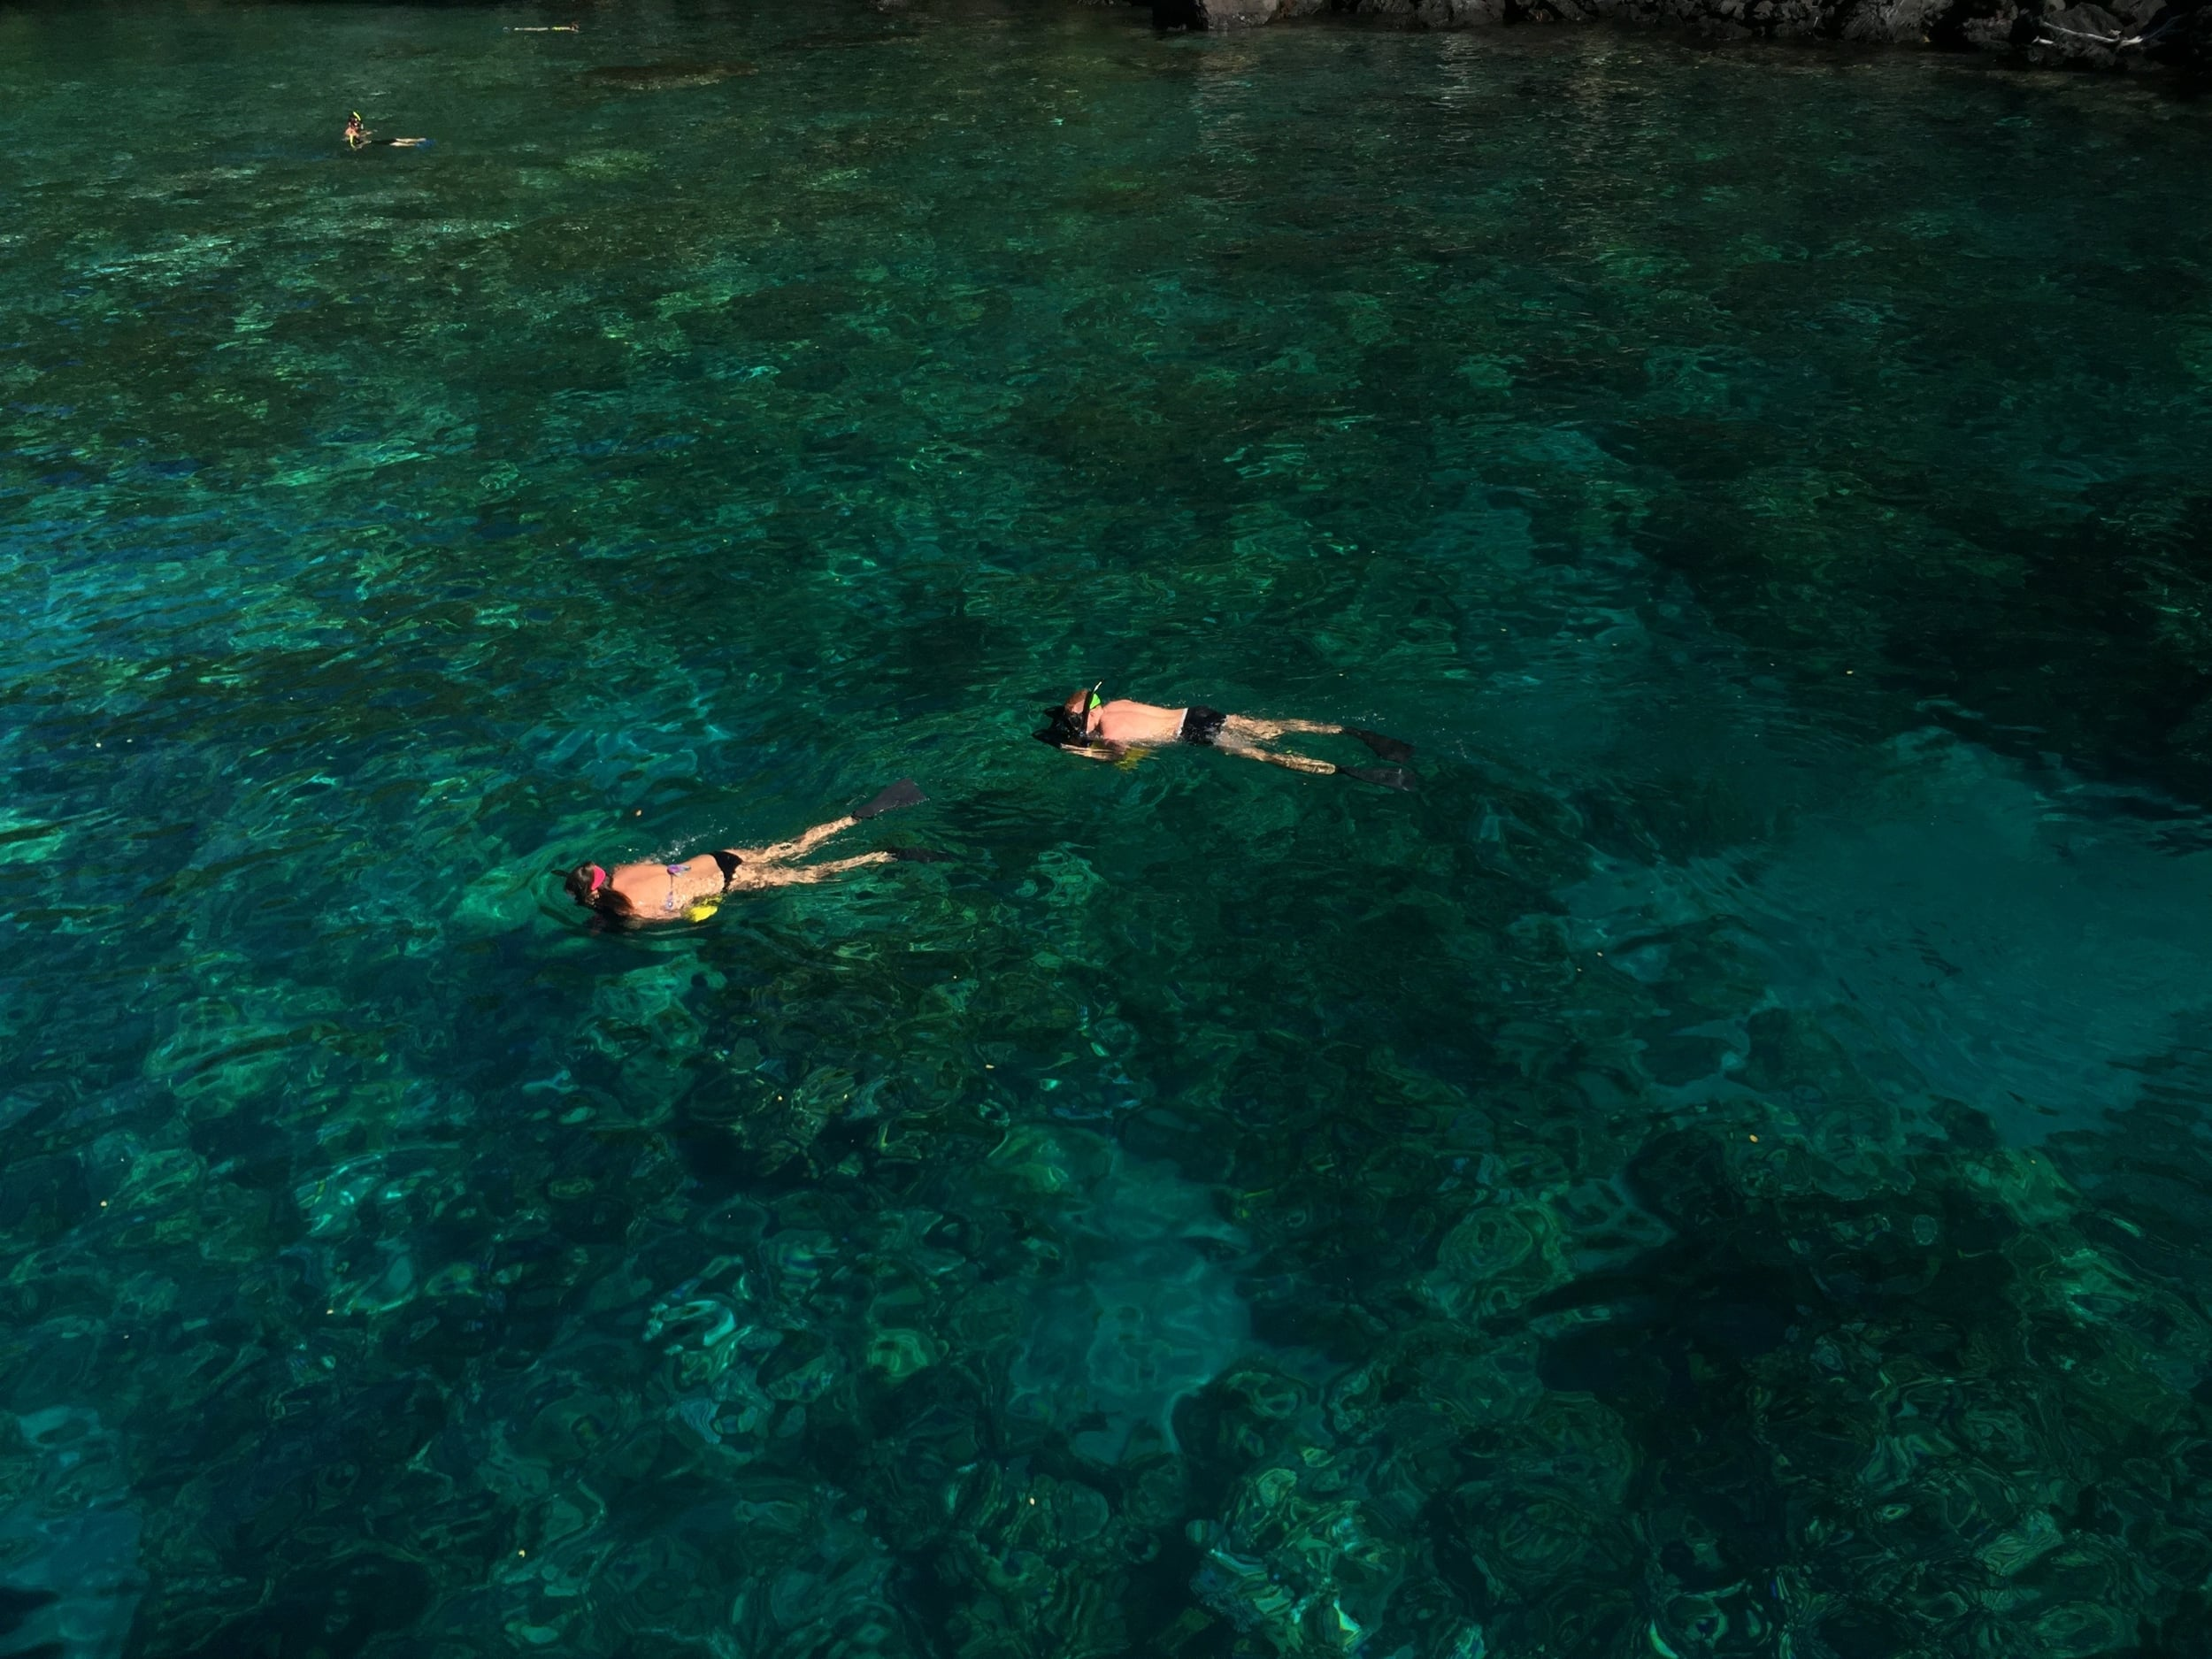 For the snorkeling in crystal clear water